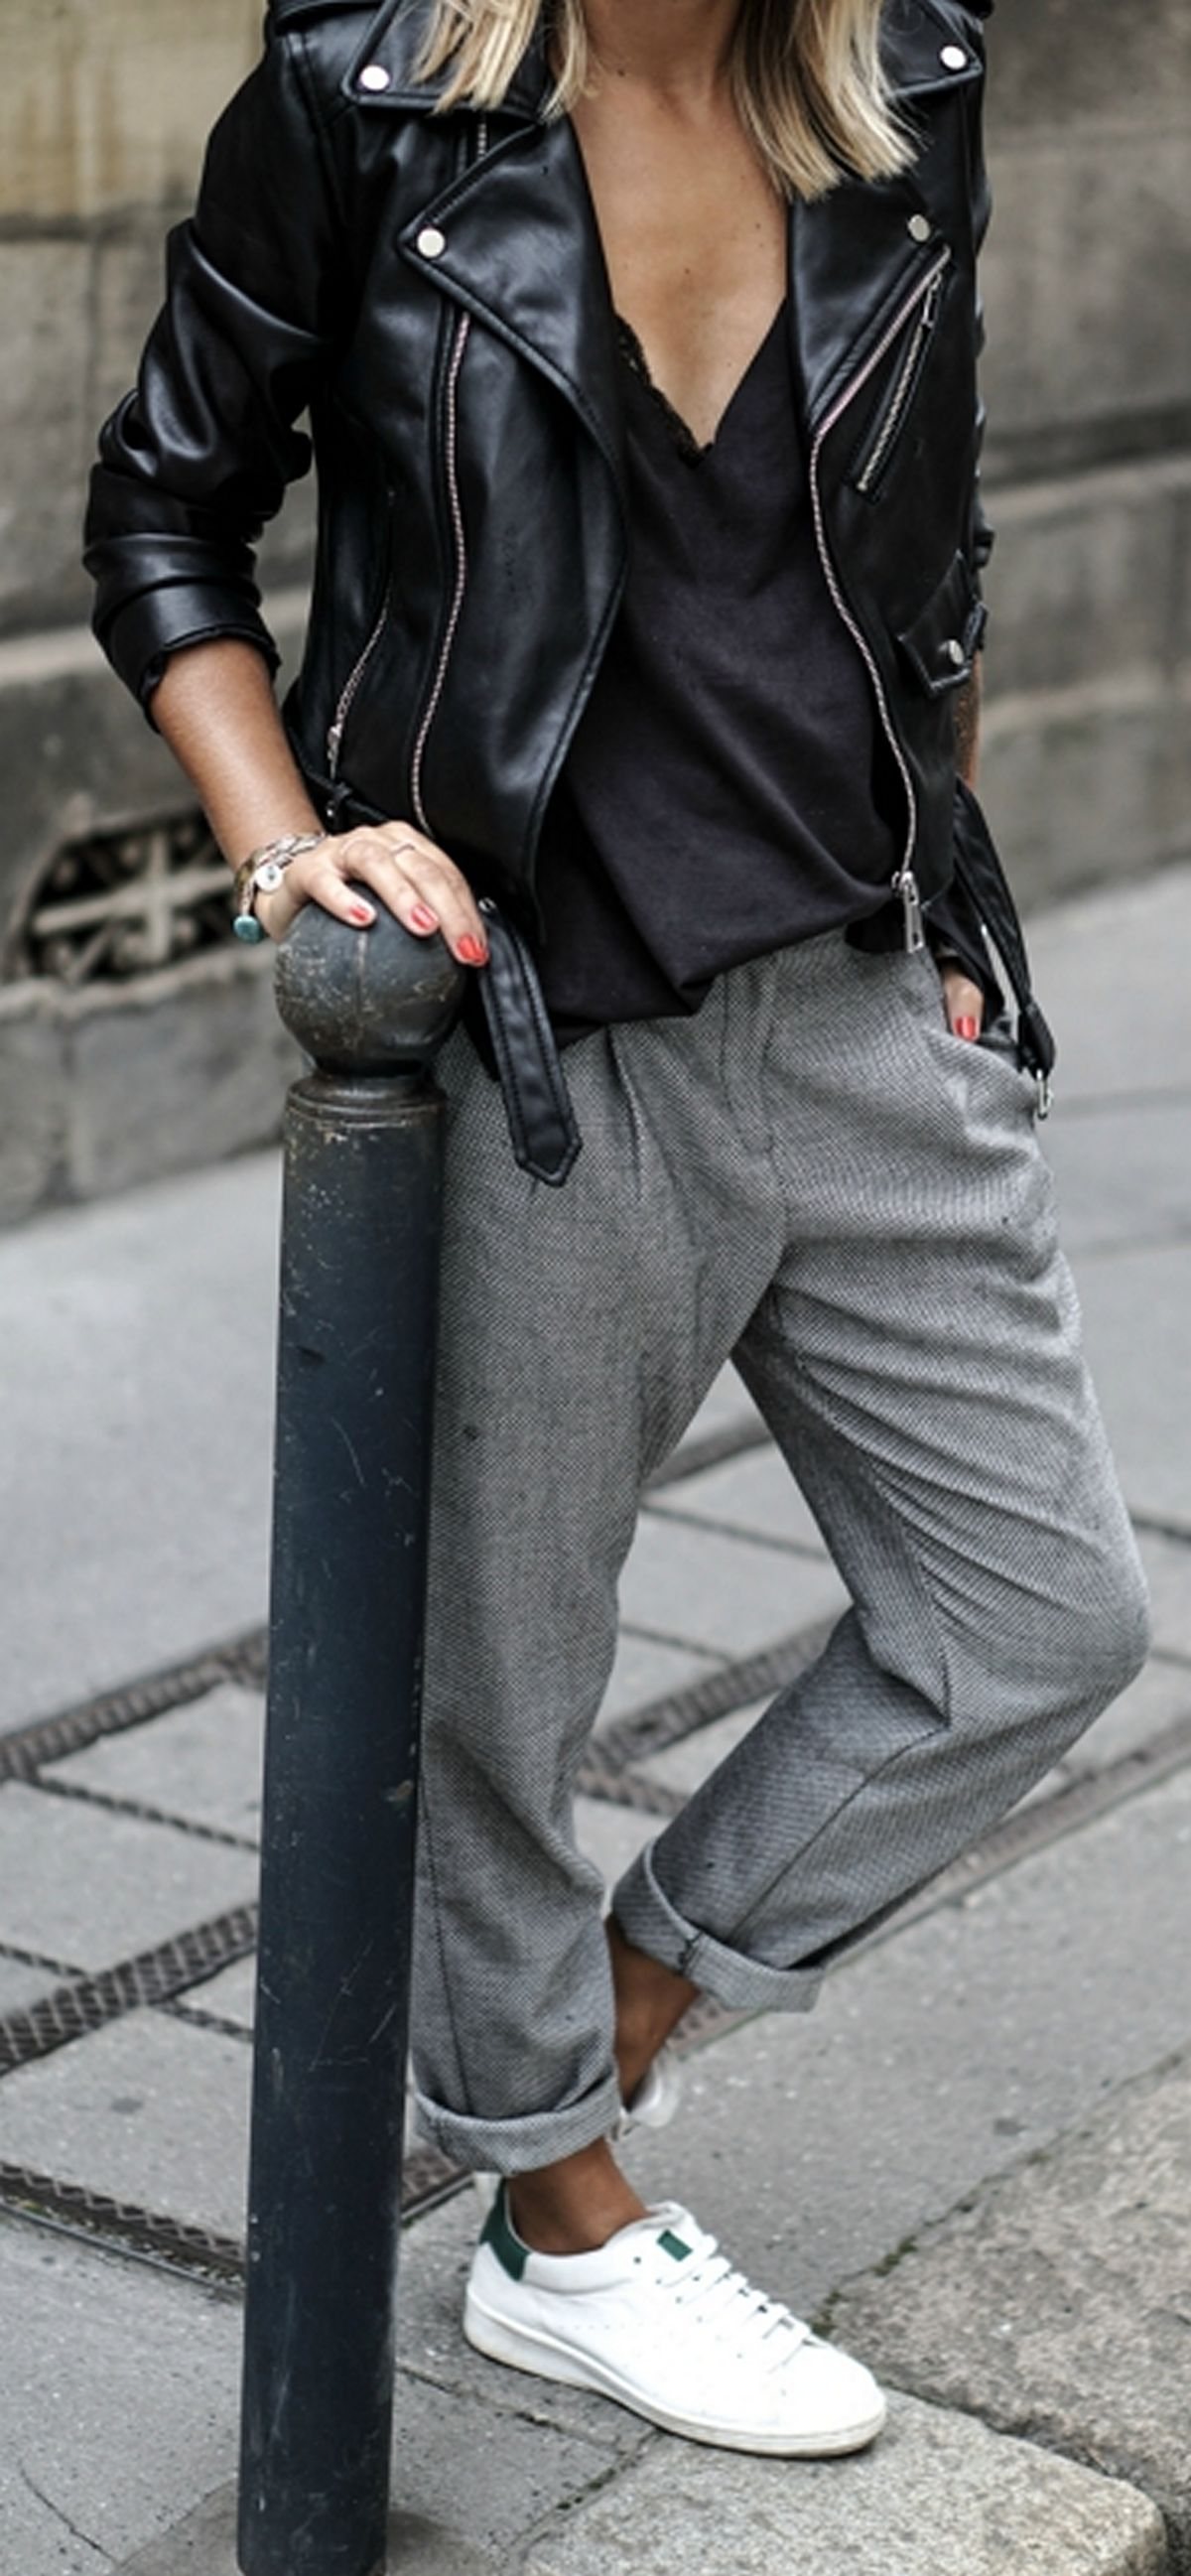 If femenine is not your style, these outfits are what you were looking for (53)